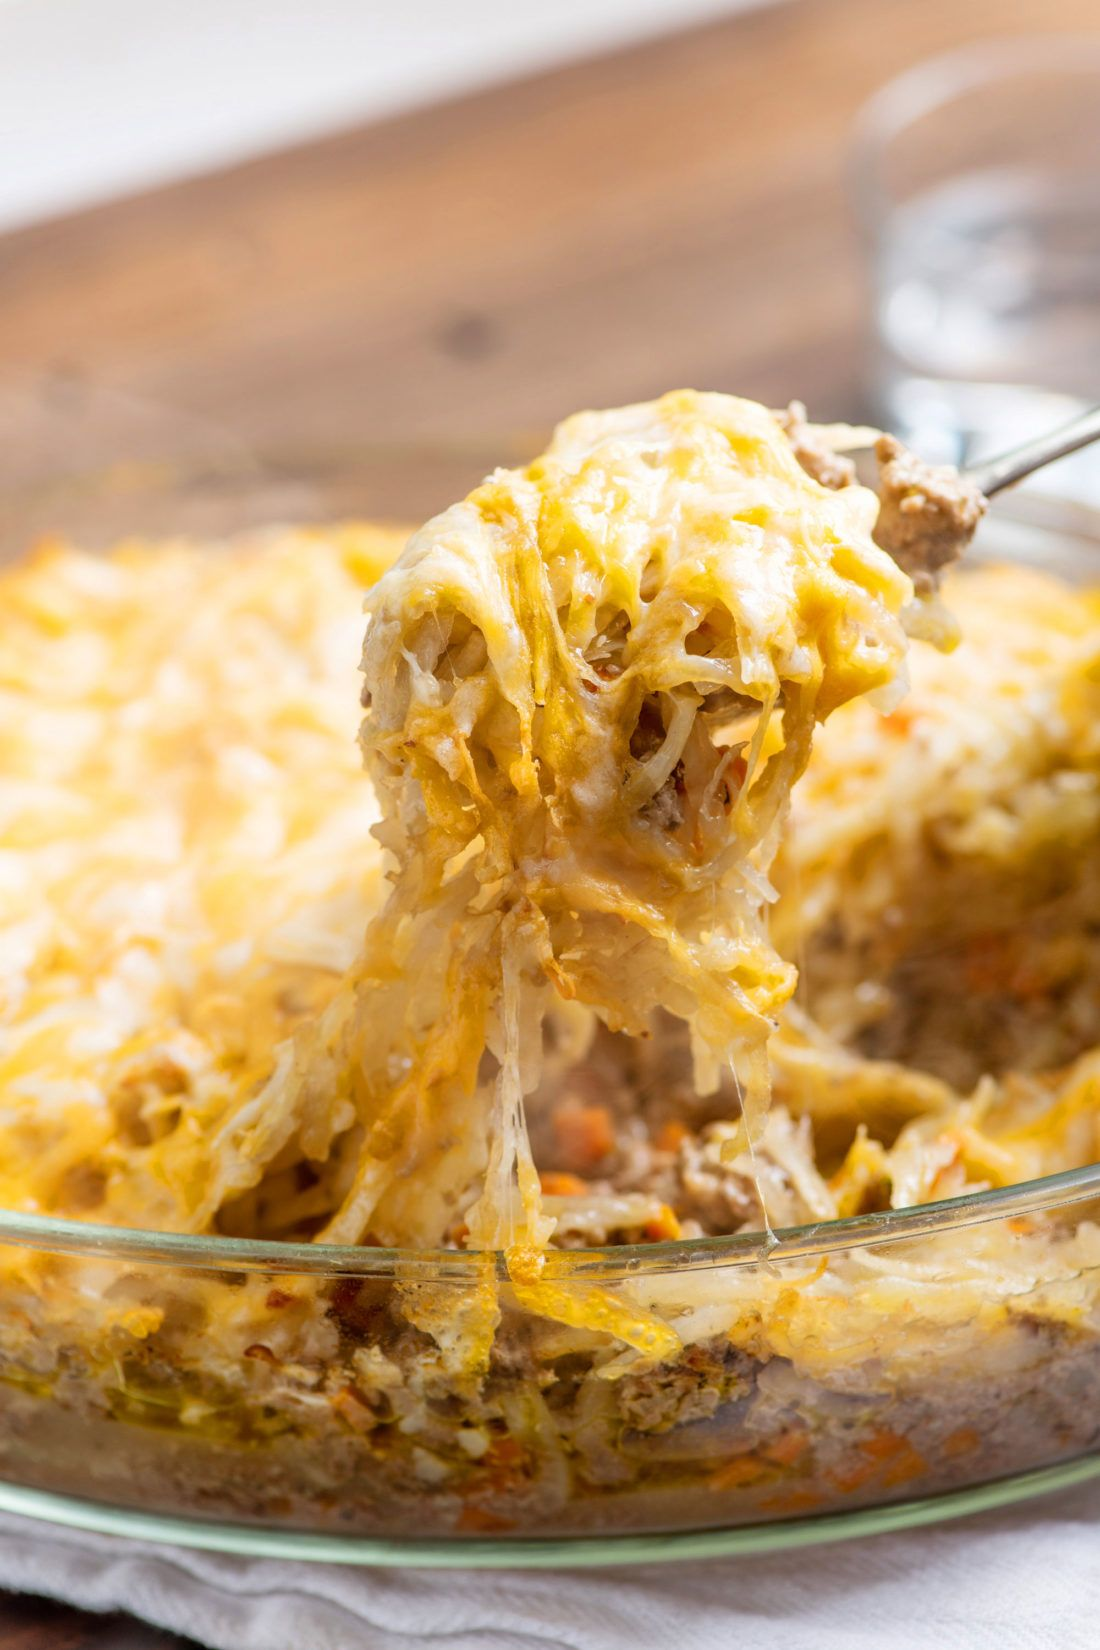 The Best Cheesy Ground Beef And Hash Brown Casserole In 2020 Hash Brown Casserole Casserole Recipes Beef And Potatoes